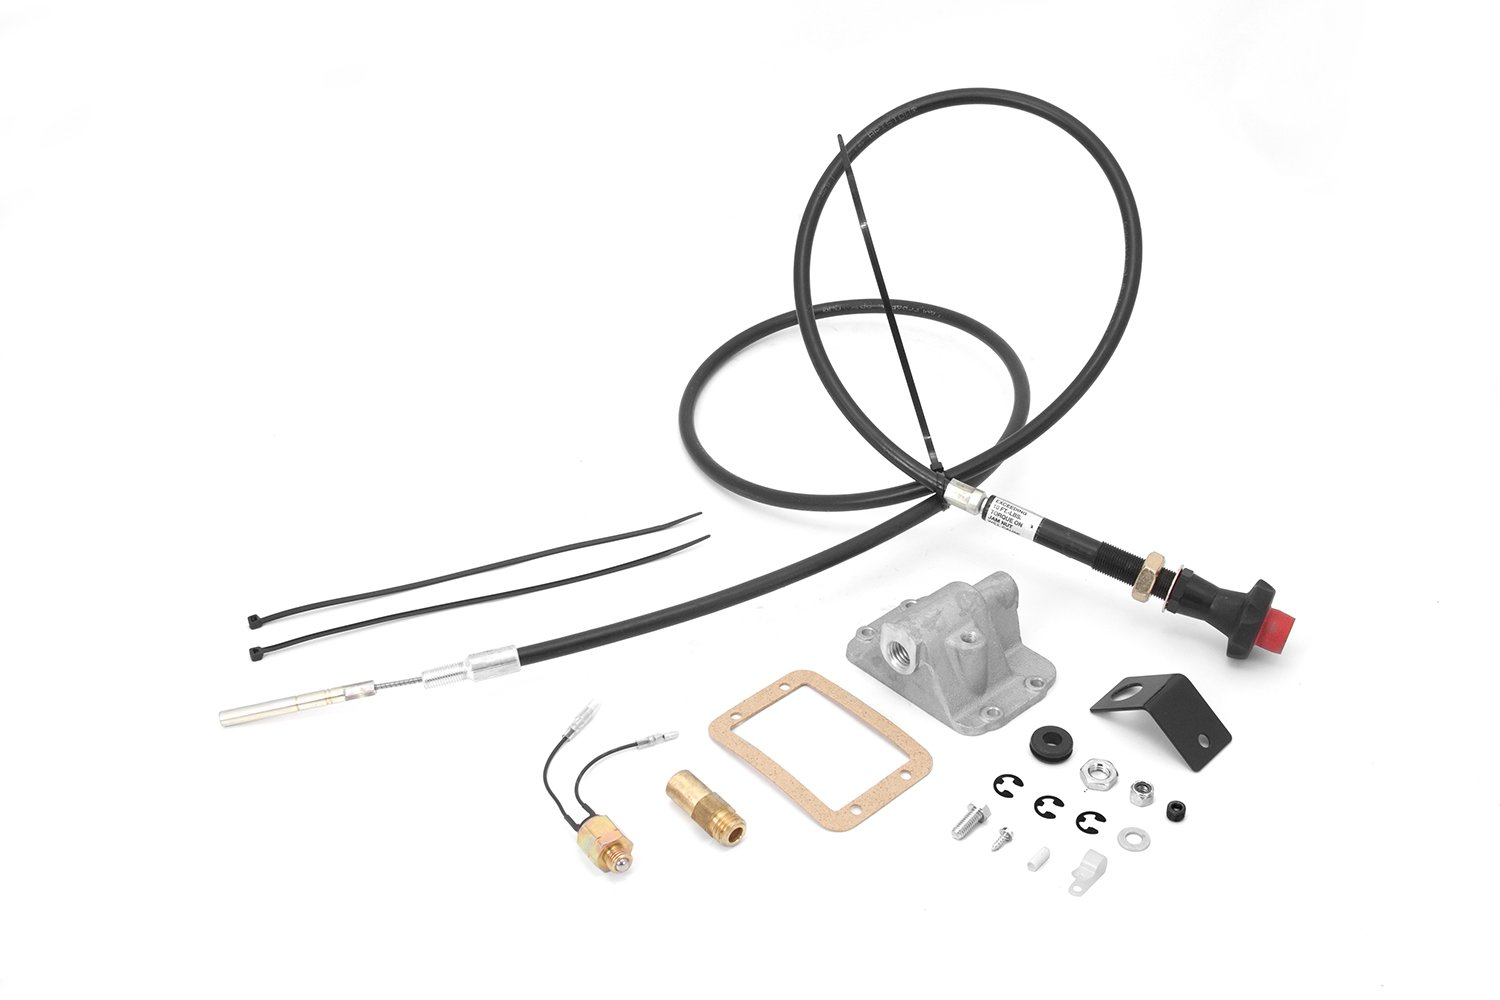 Alloy USA 450400 Differential Cable Lock Kit for 1994-2004 Dodge 1500/2500 with Dana 44 or Dana 60 Axle